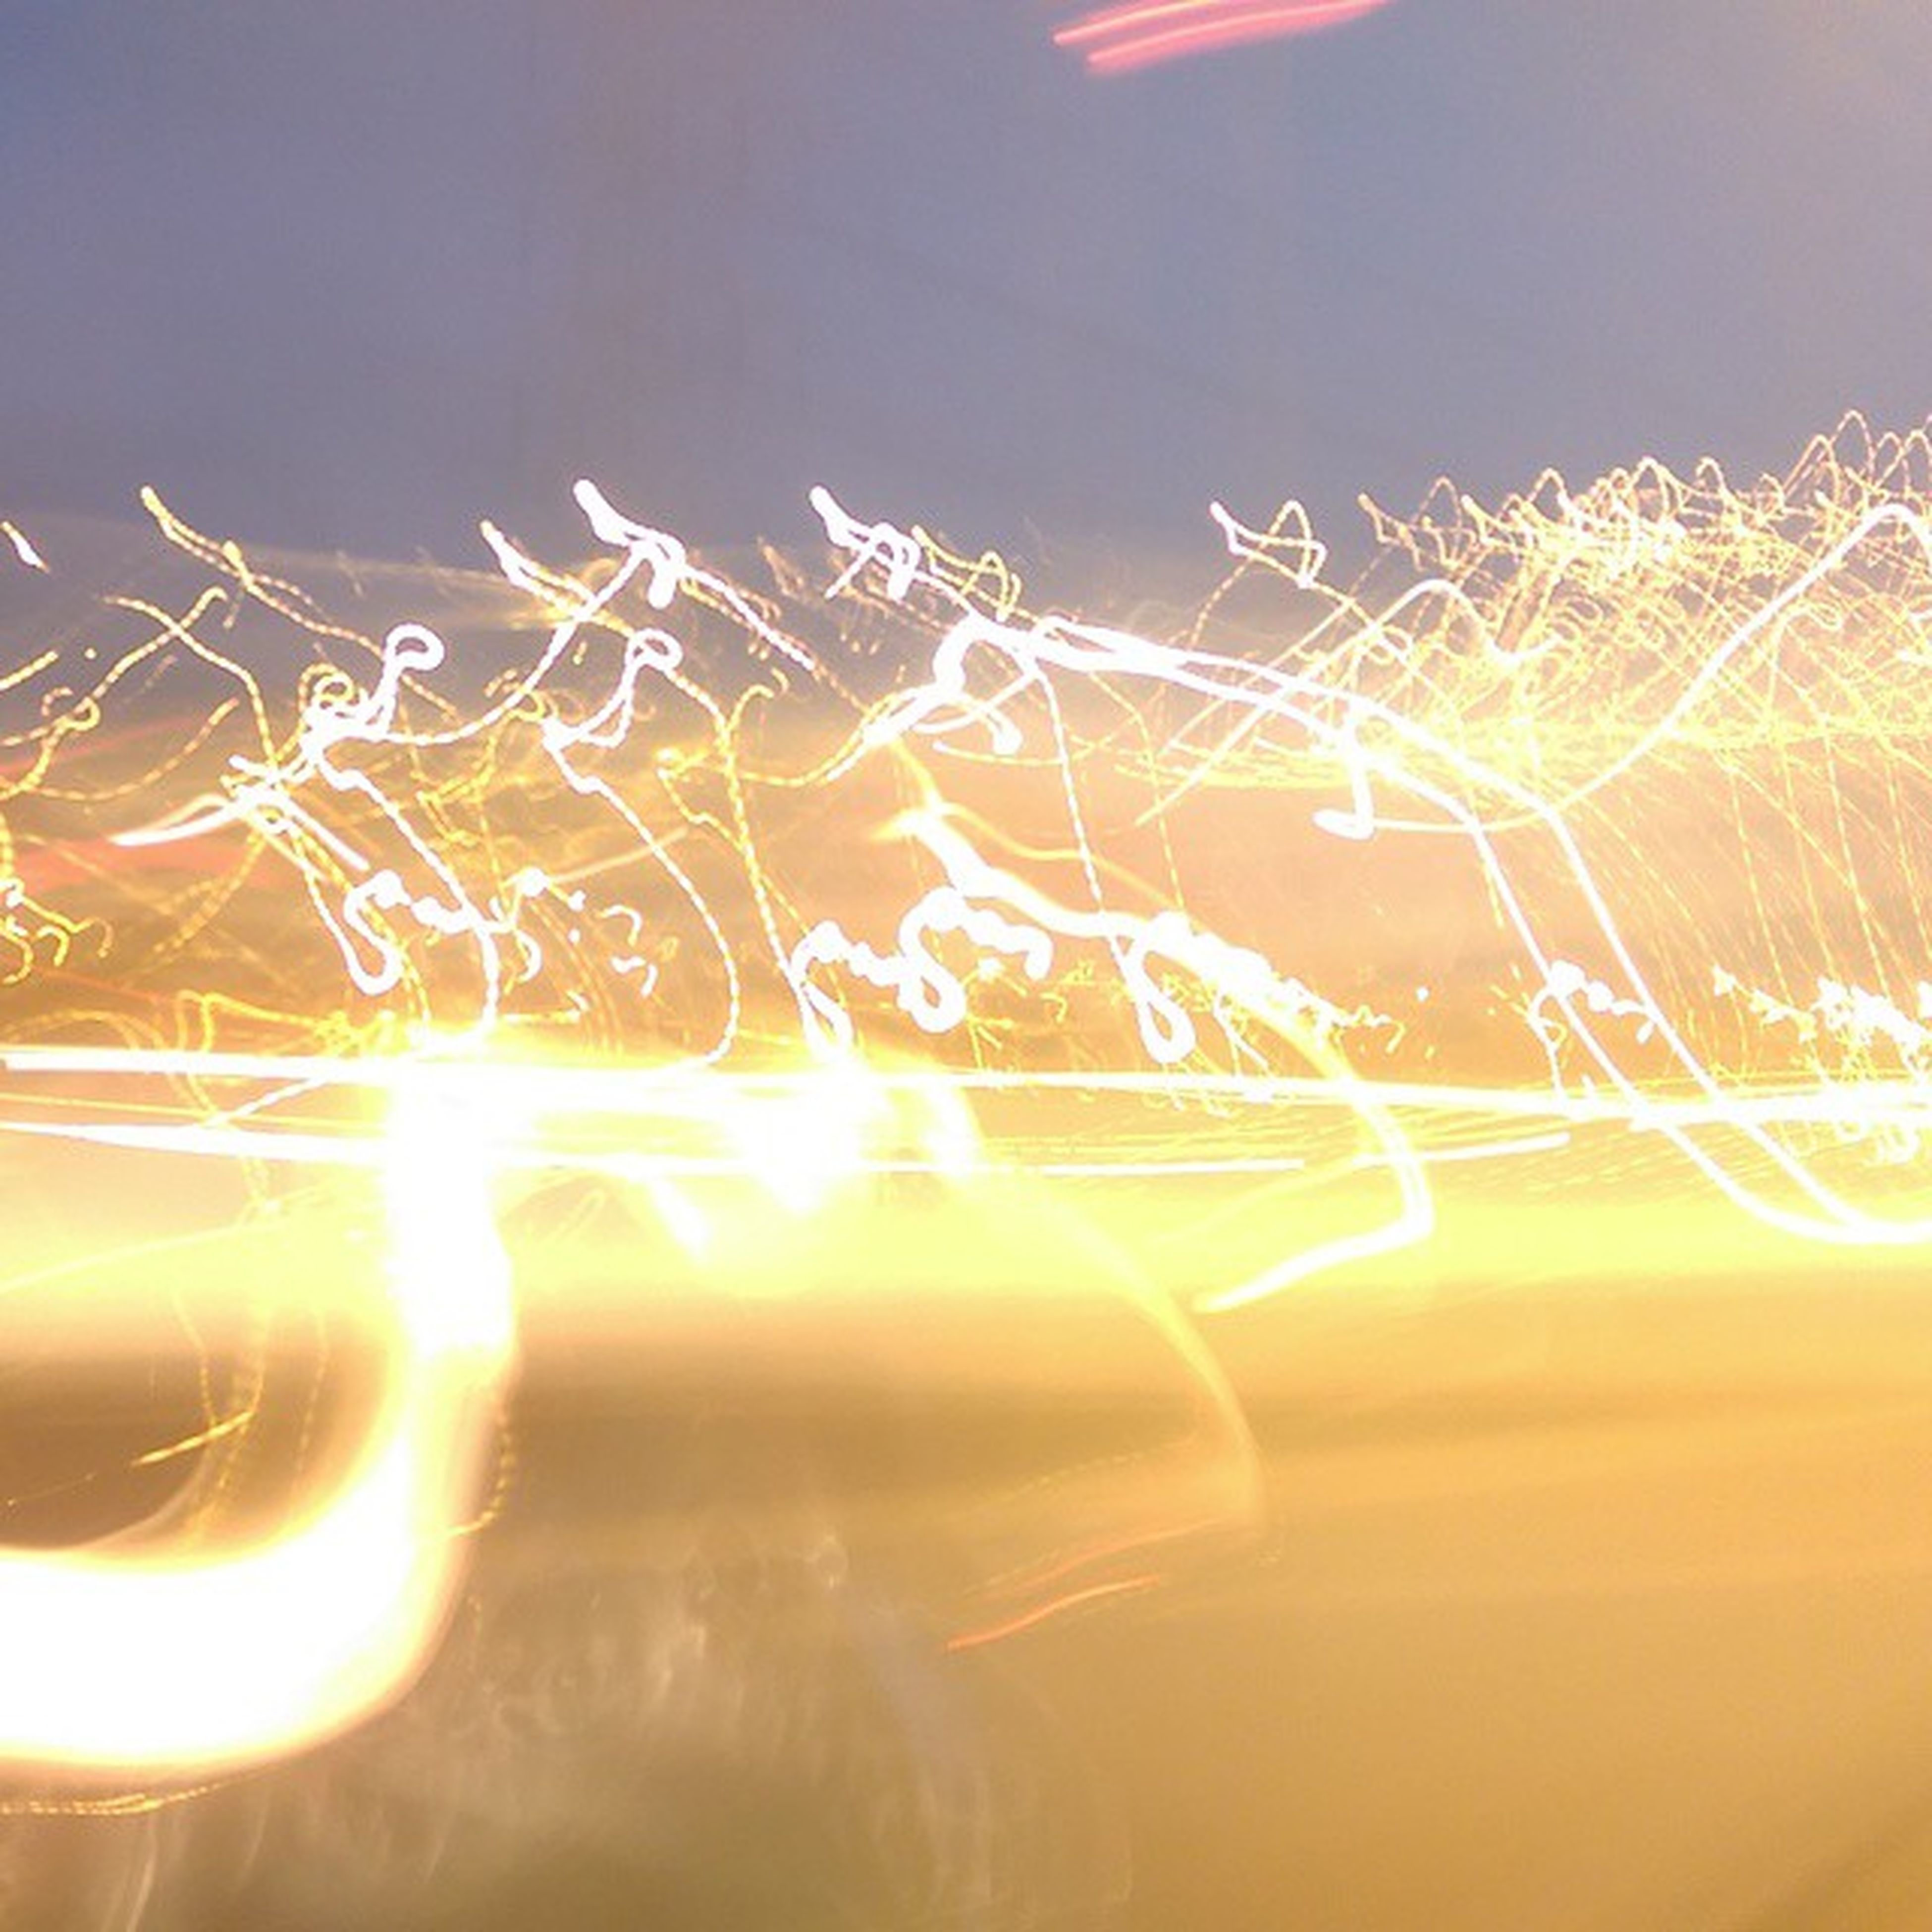 illuminated, night, glowing, long exposure, motion, multi colored, light trail, abstract, light - natural phenomenon, blurred motion, light painting, lighting equipment, no people, light, speed, close-up, lens flare, outdoors, light effect, reflection